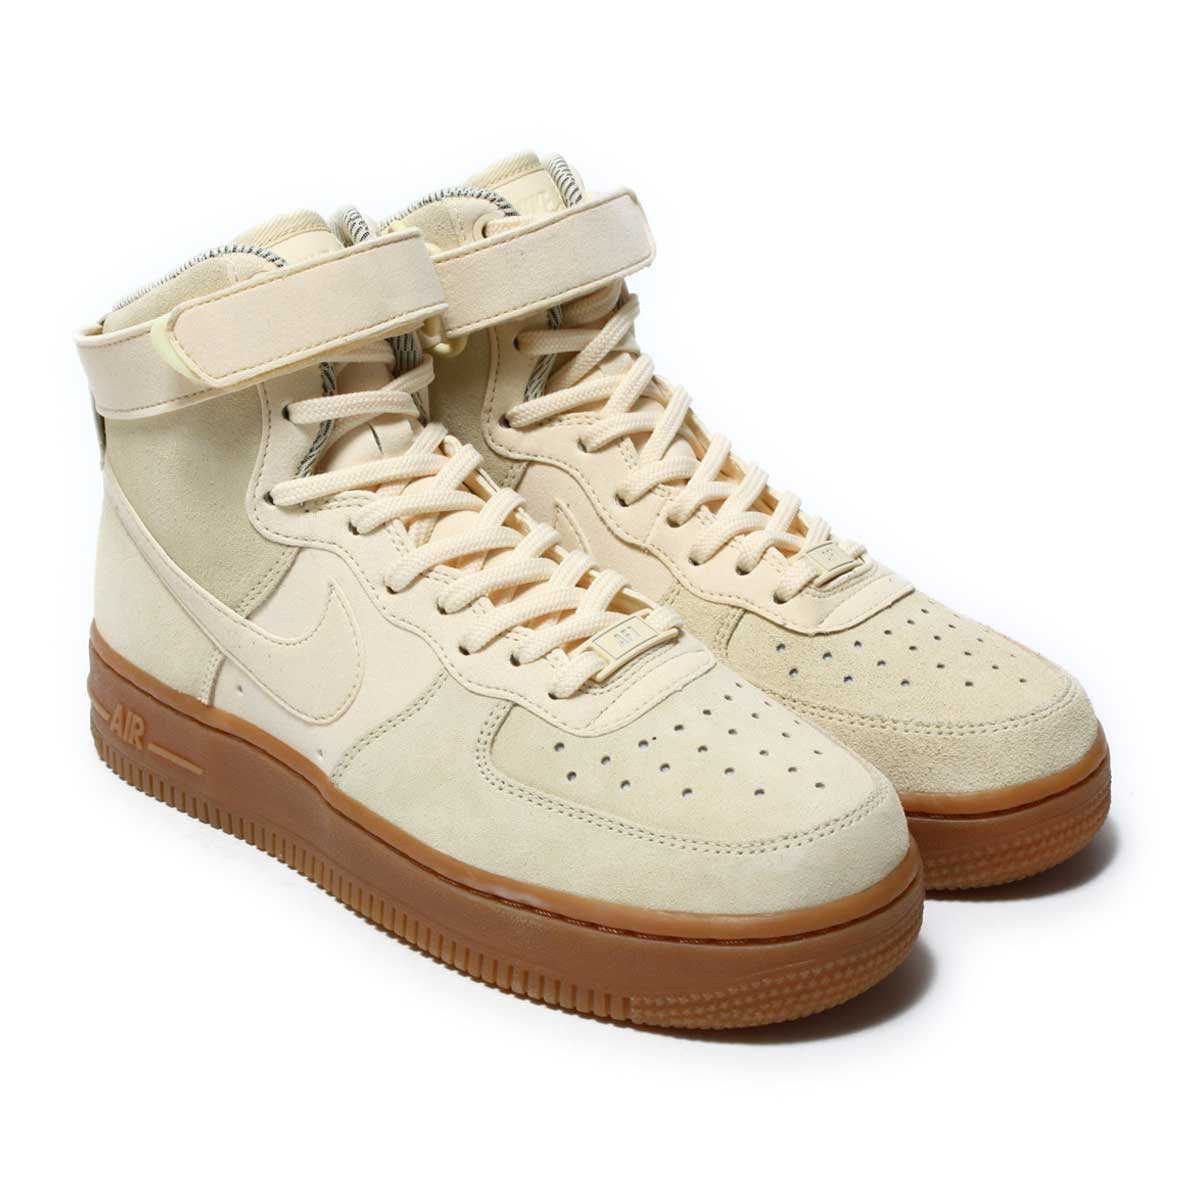 Nike women air force 1 HI SE remakes a constant seller of the hard court of  1982. Upper of the stylish good quality material that garnished an ankle  with ... 2a0d07309d